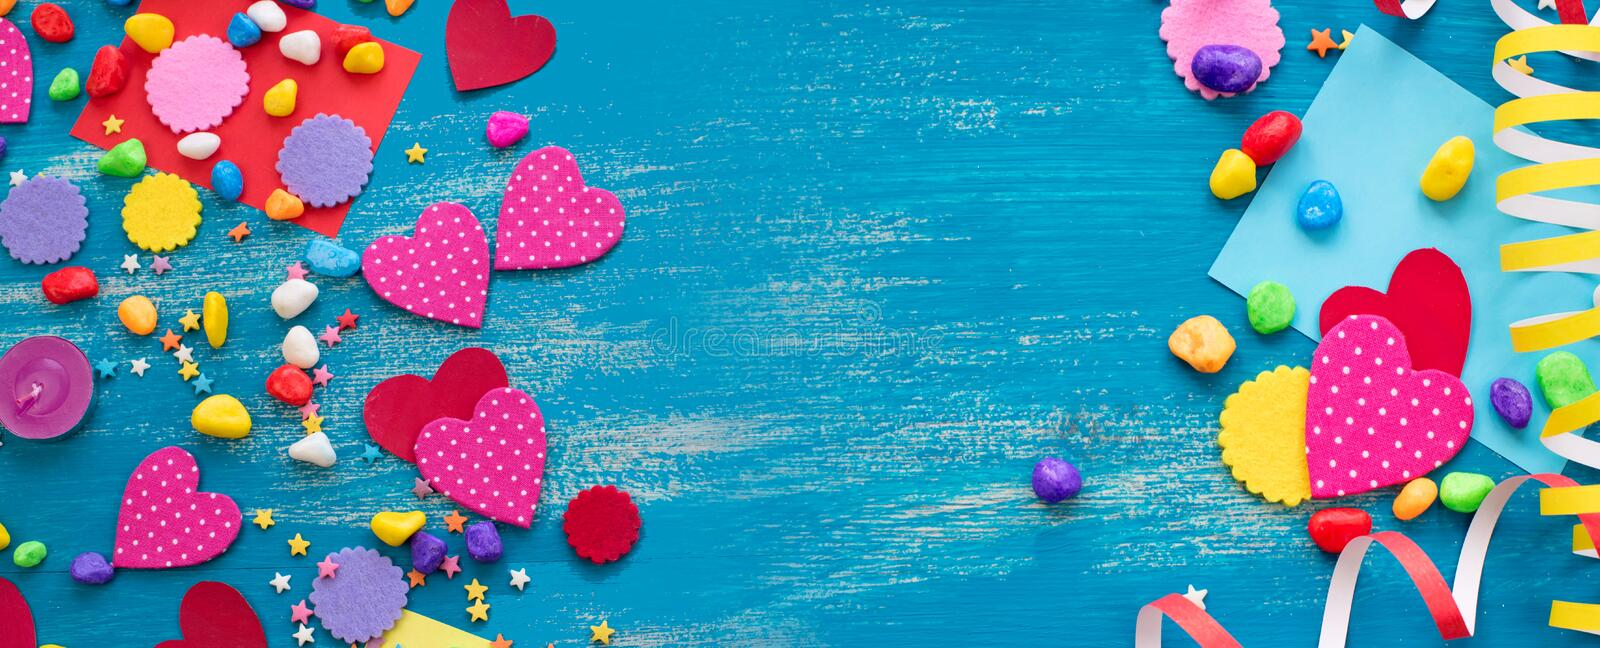 Banner Decorative holiday background with streamers confetti candy hearts decor. royalty free stock photos